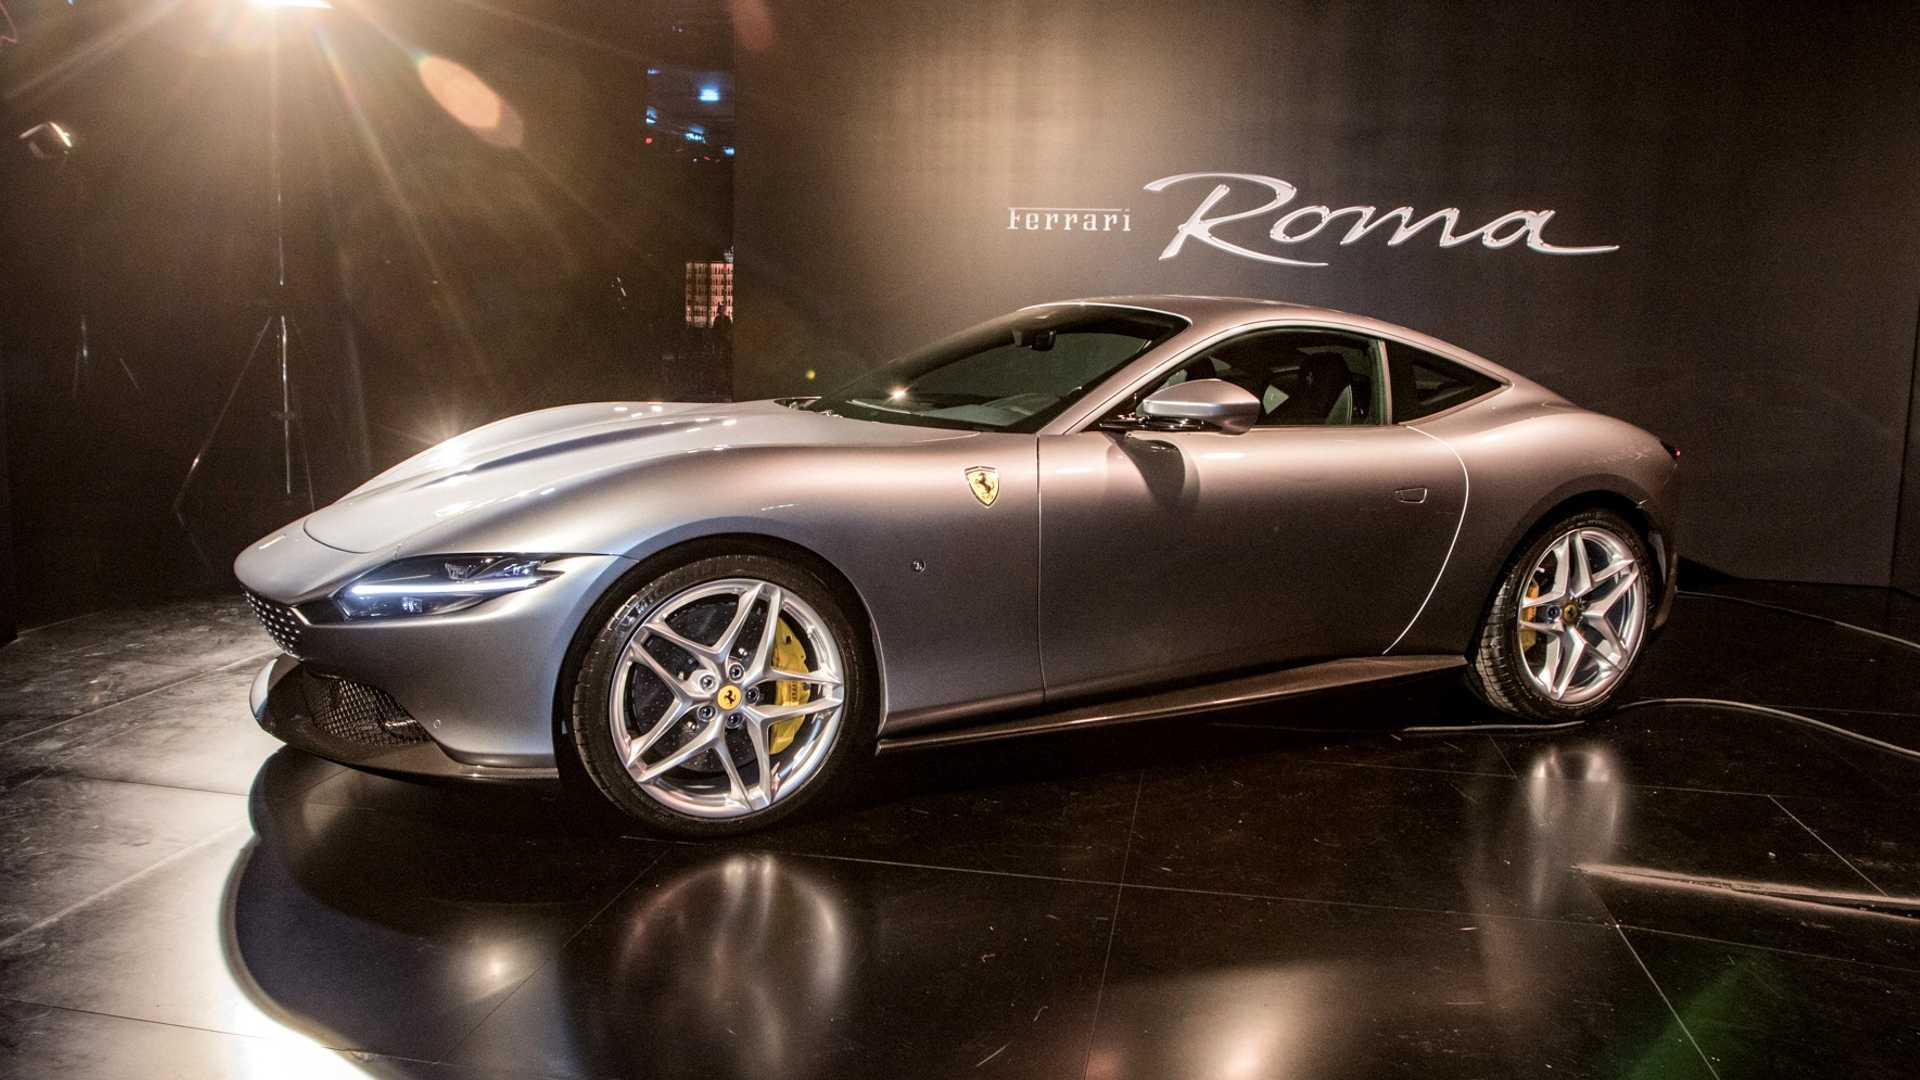 Ferrari Roma Shows Off Its Sleek Styling In Live Photos From Premiere